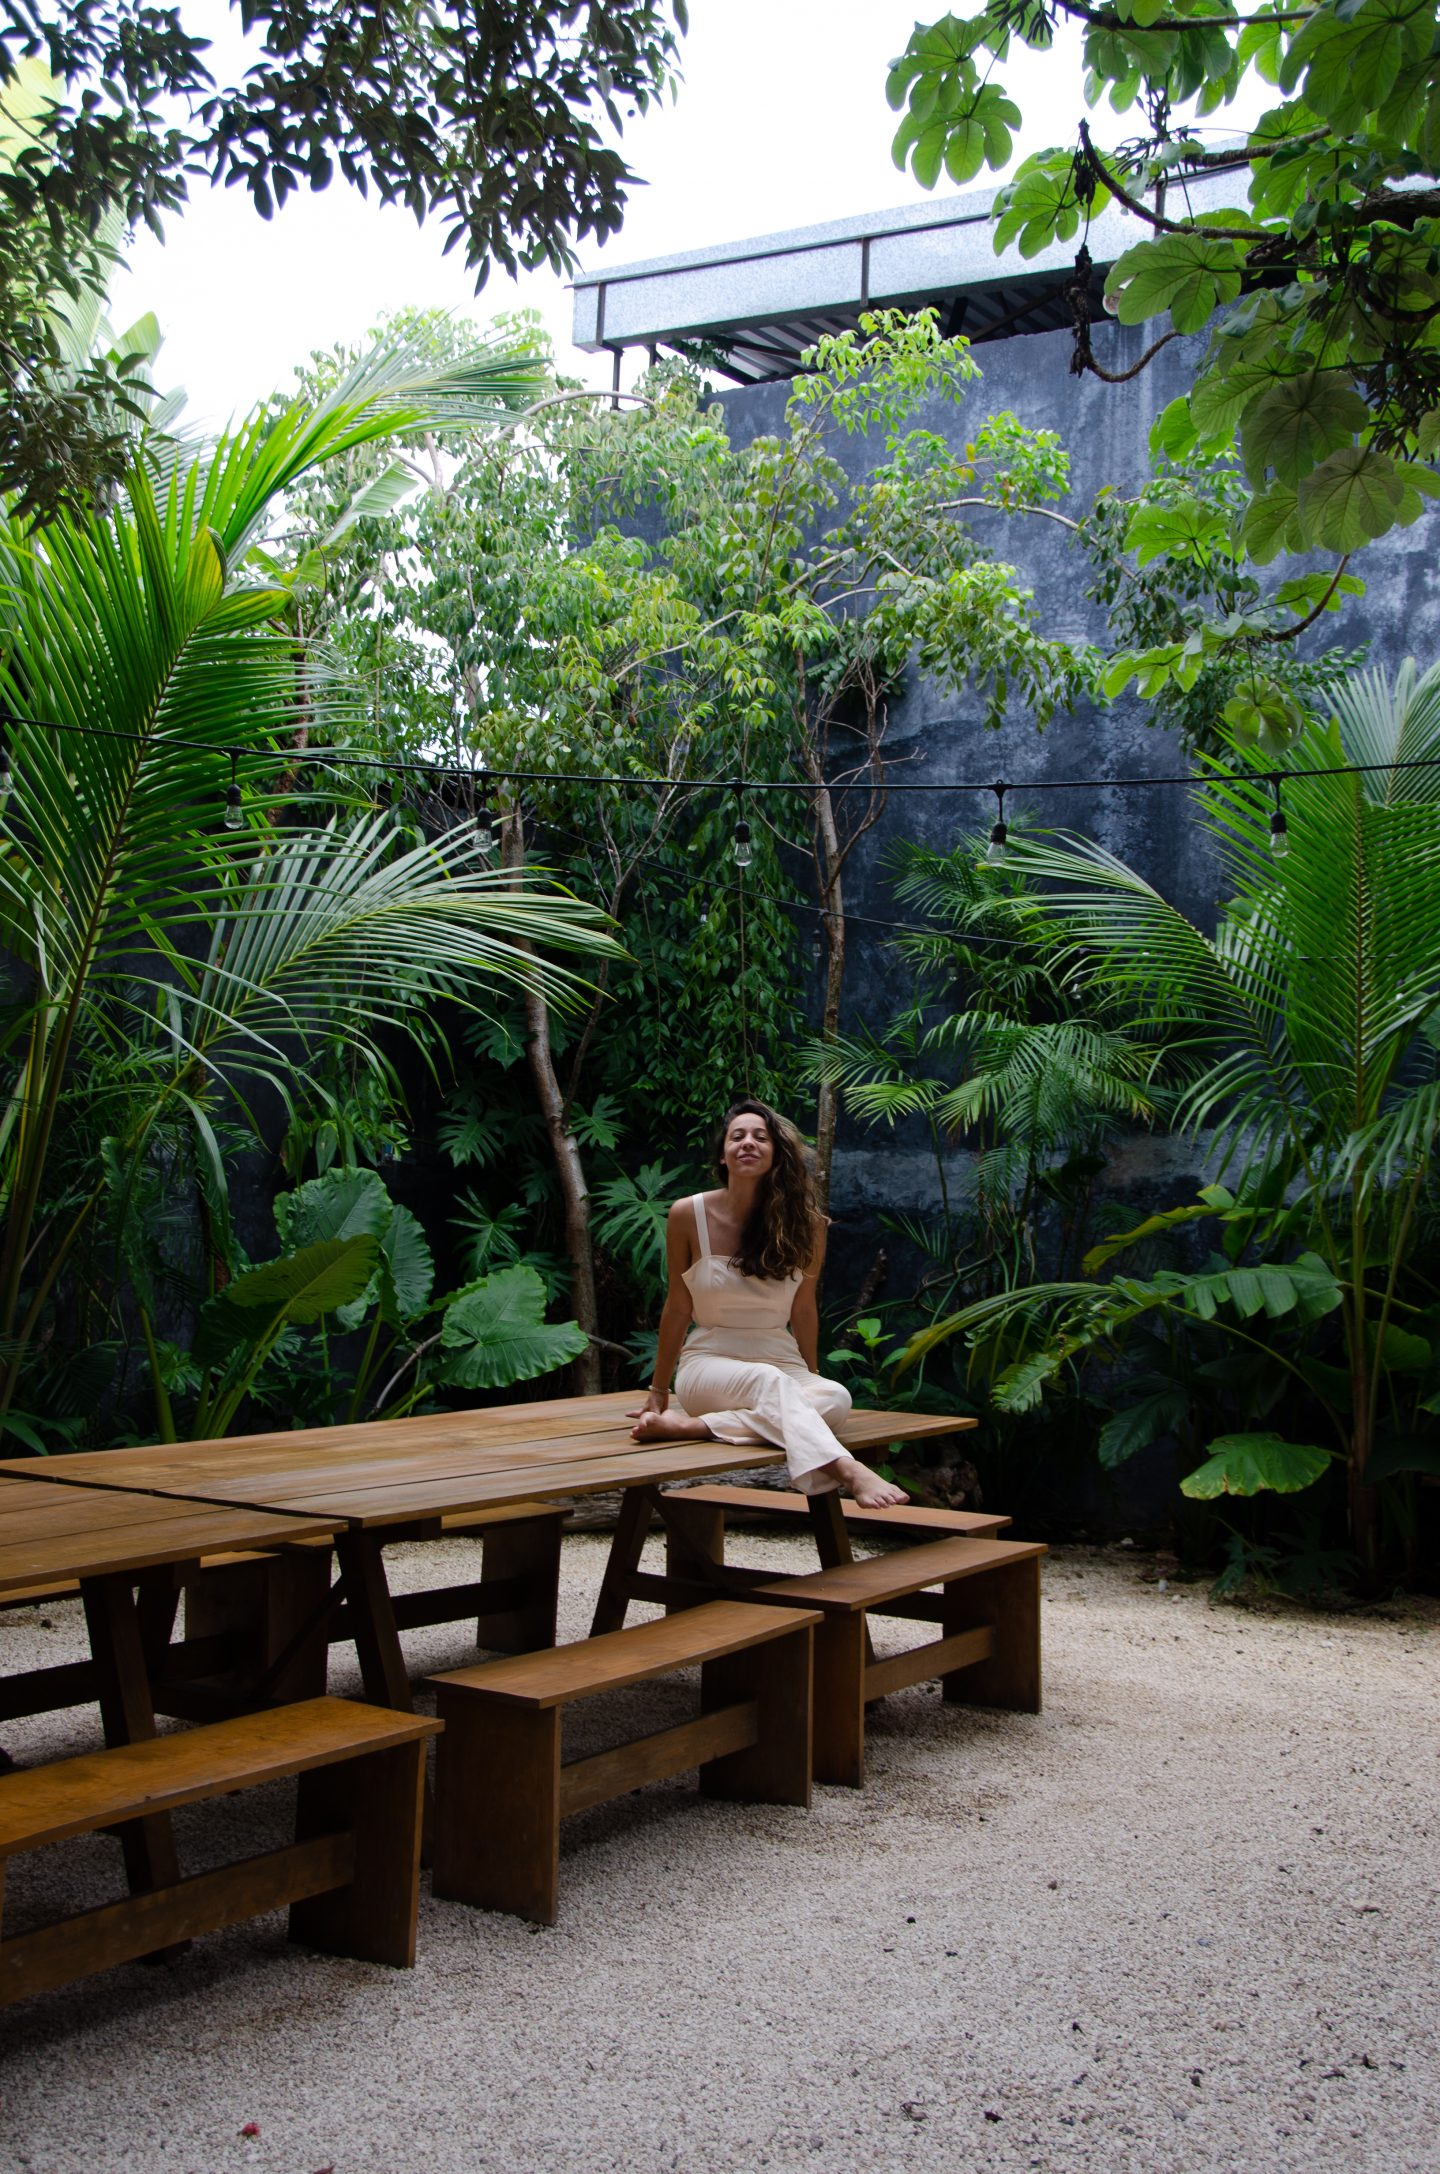 sample image of girl with jungle vibes for lightroom travel presets